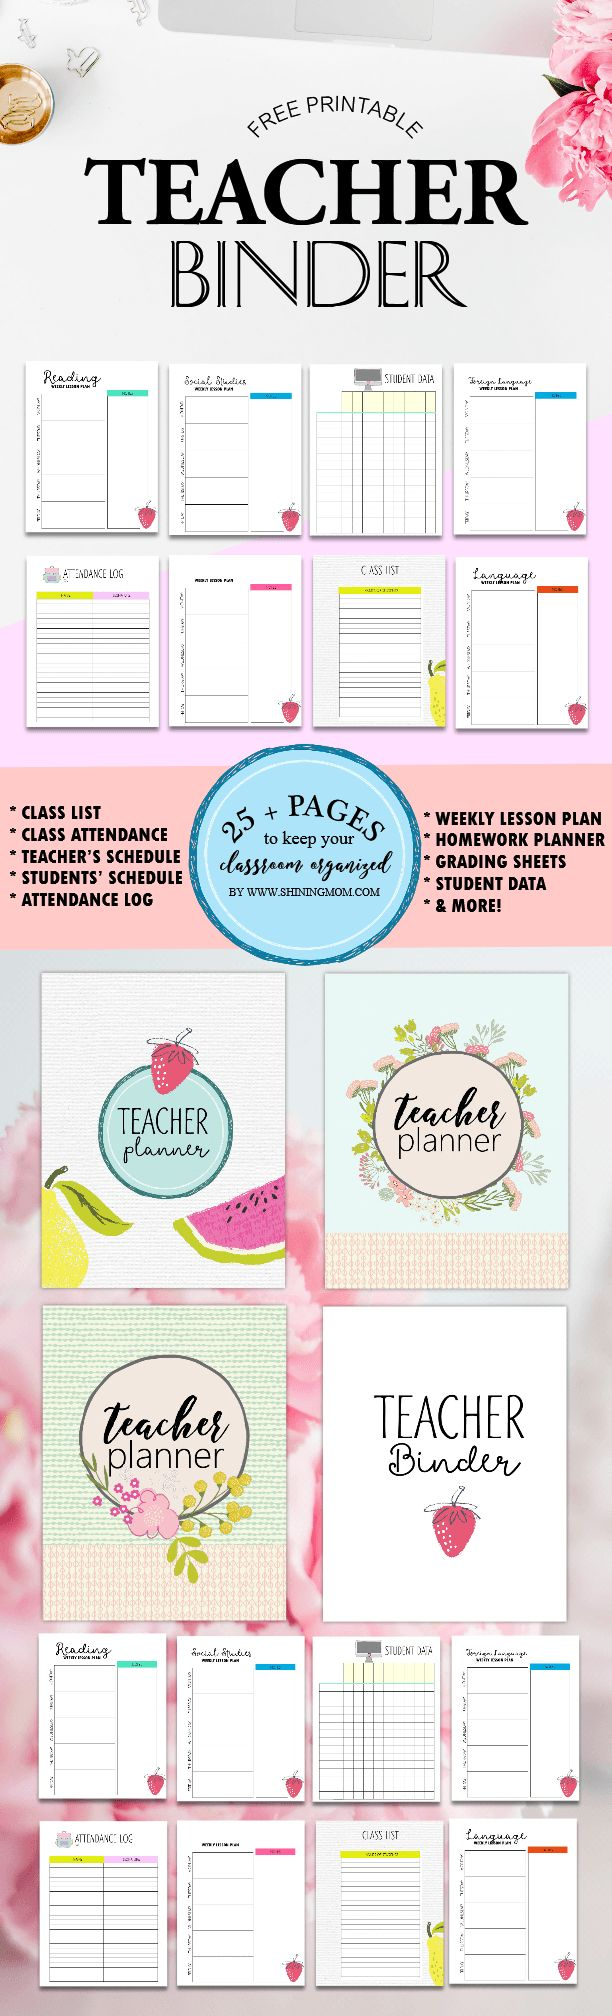 These are so cute! Free Teacher Binder Printables: Over 25 Pretty Planning Templates!